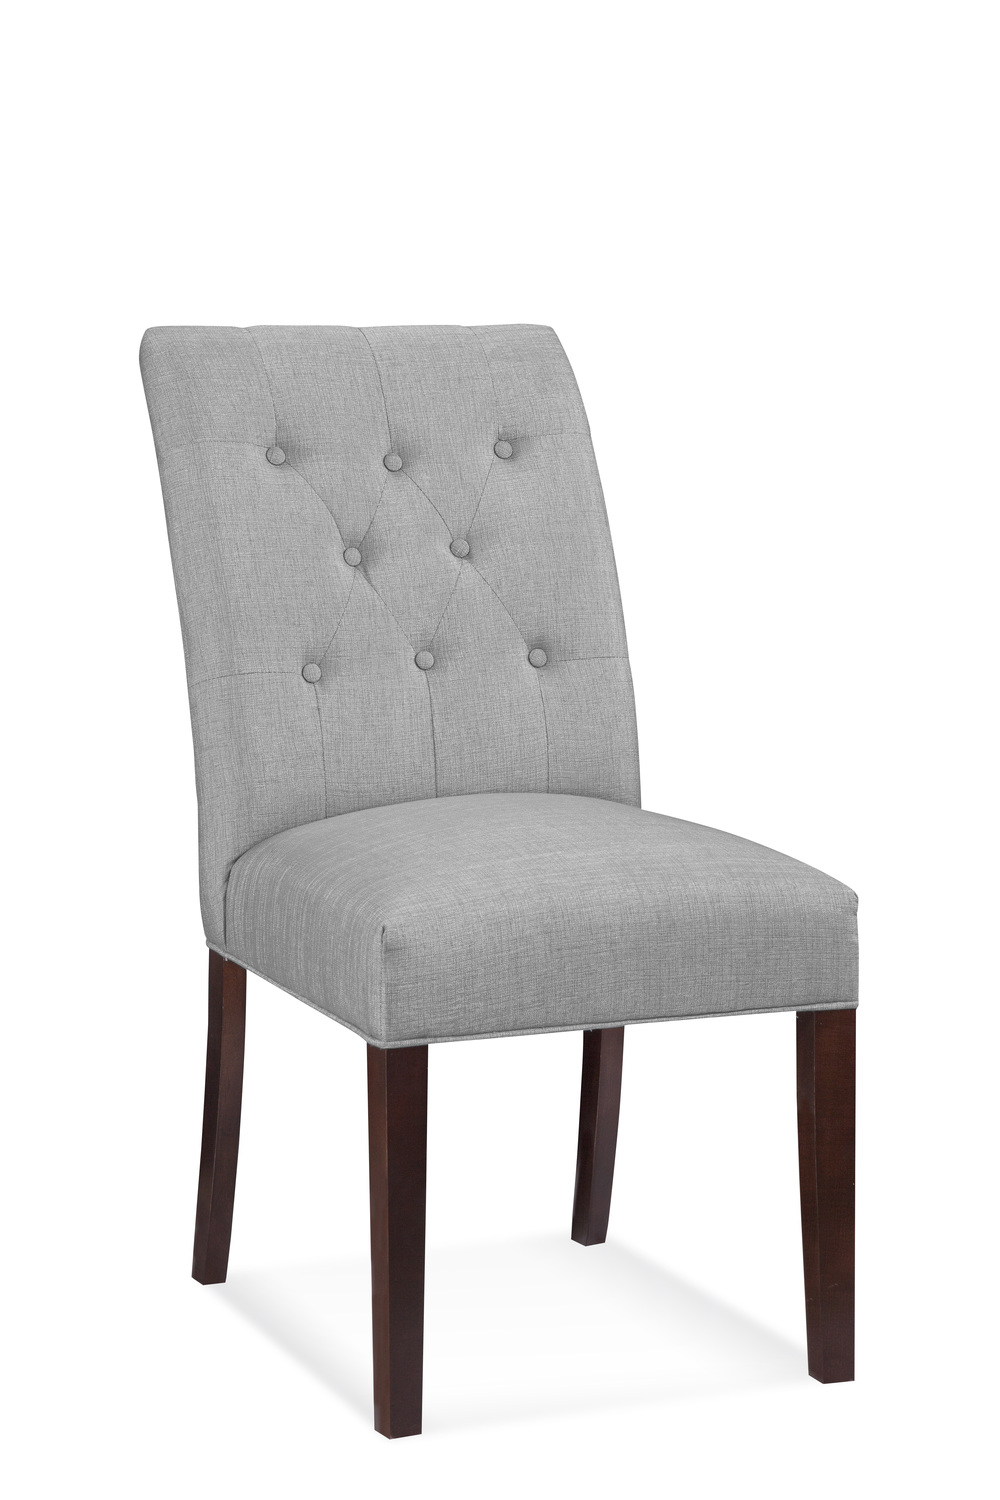 Edwards Dining Chair